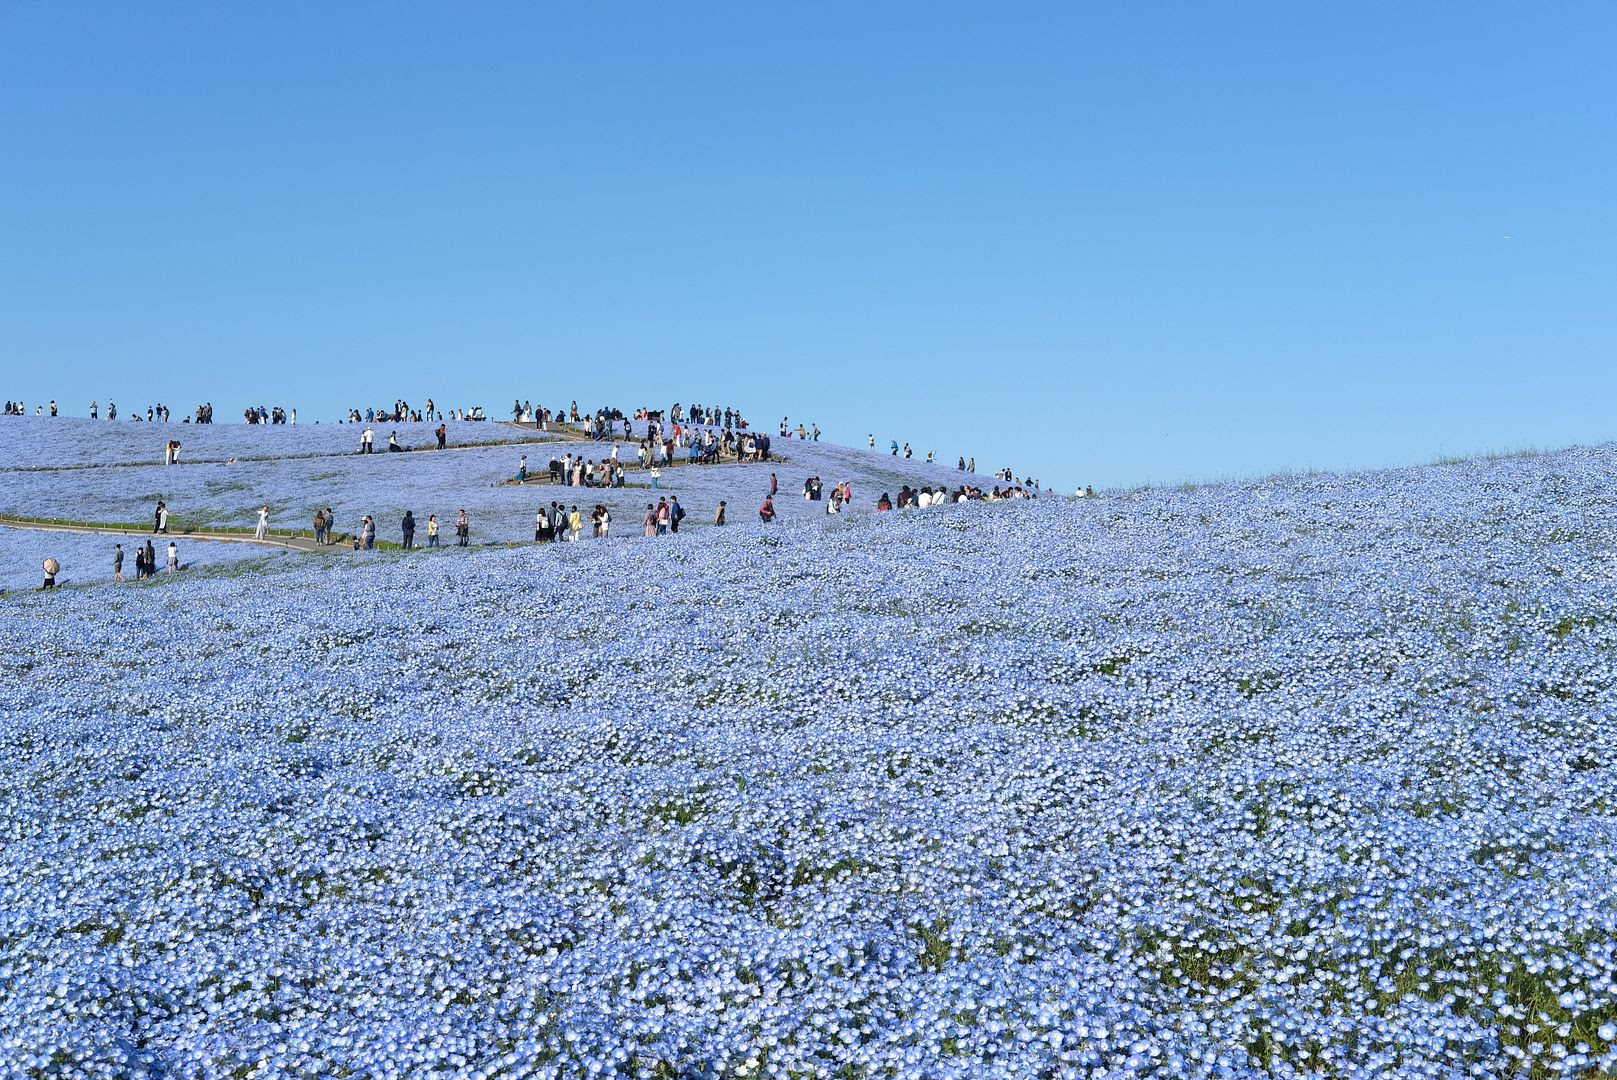 photo Hitachi Seaside Park Ibaraki Japan 6.jpg